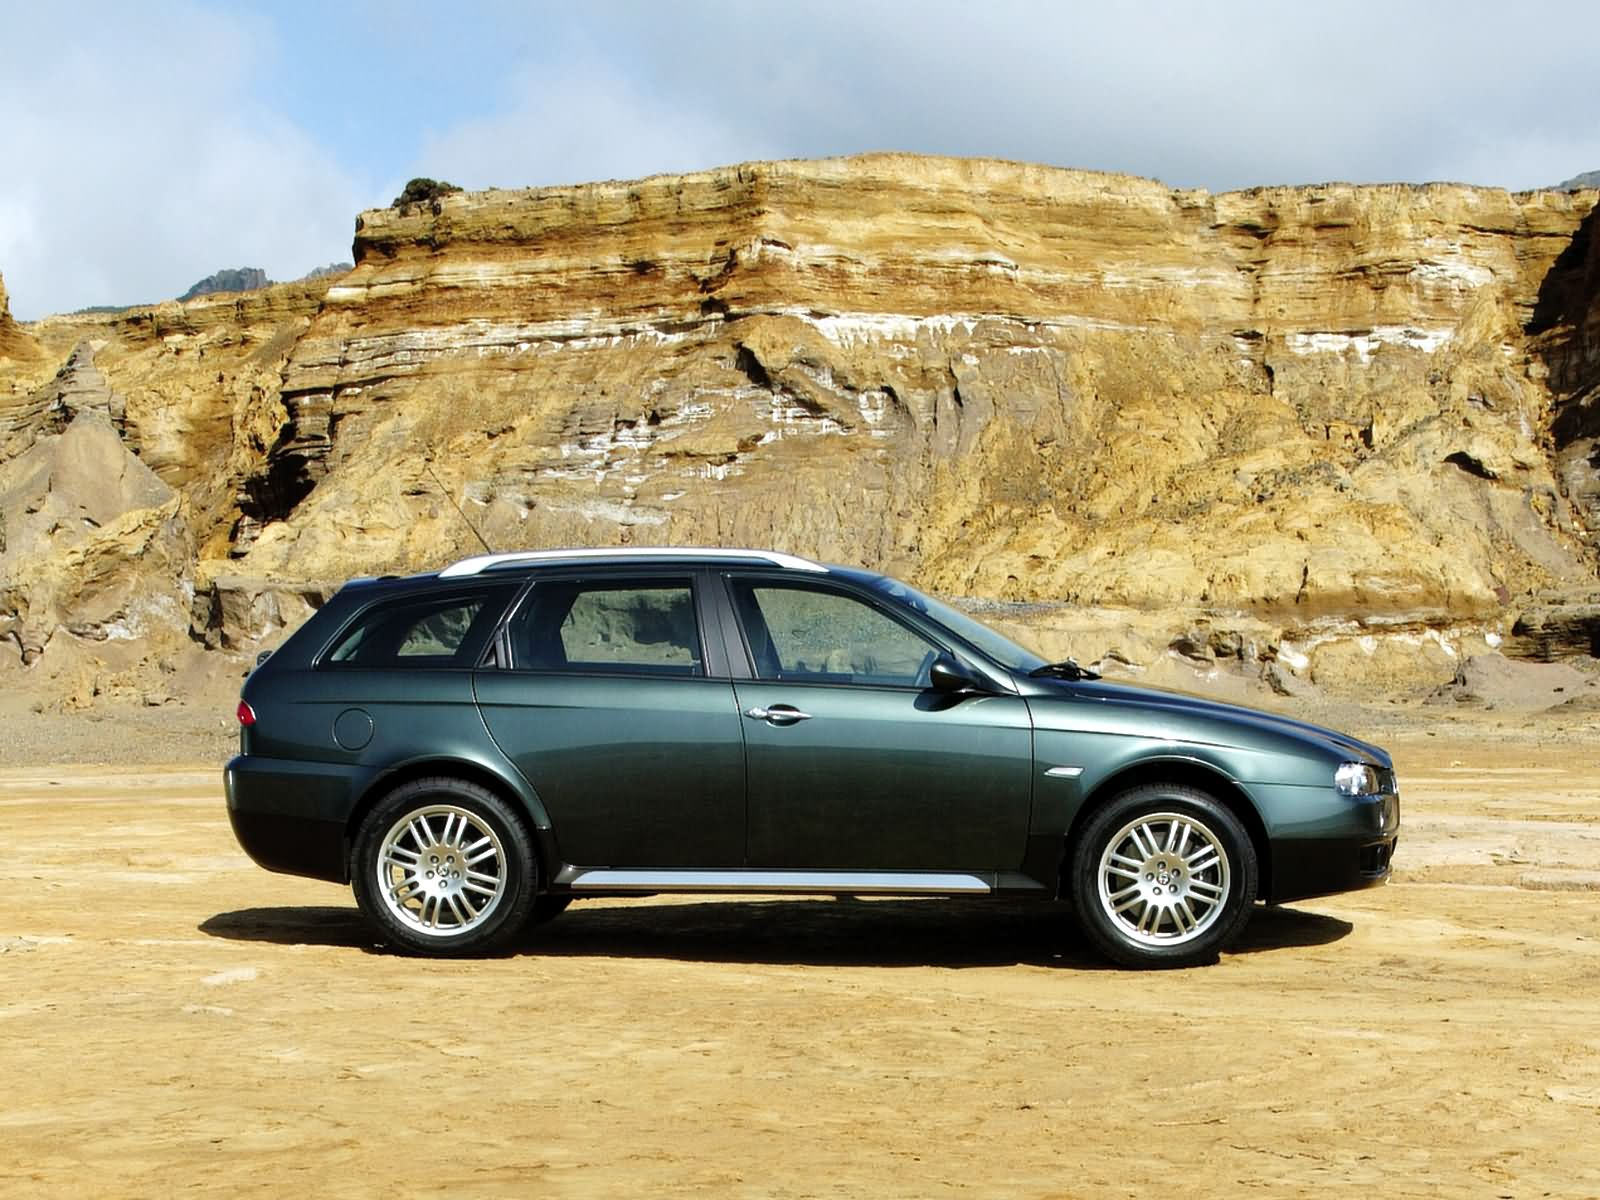 alfa romeo 156 crosswagon photos photogallery with 57 pics. Black Bedroom Furniture Sets. Home Design Ideas